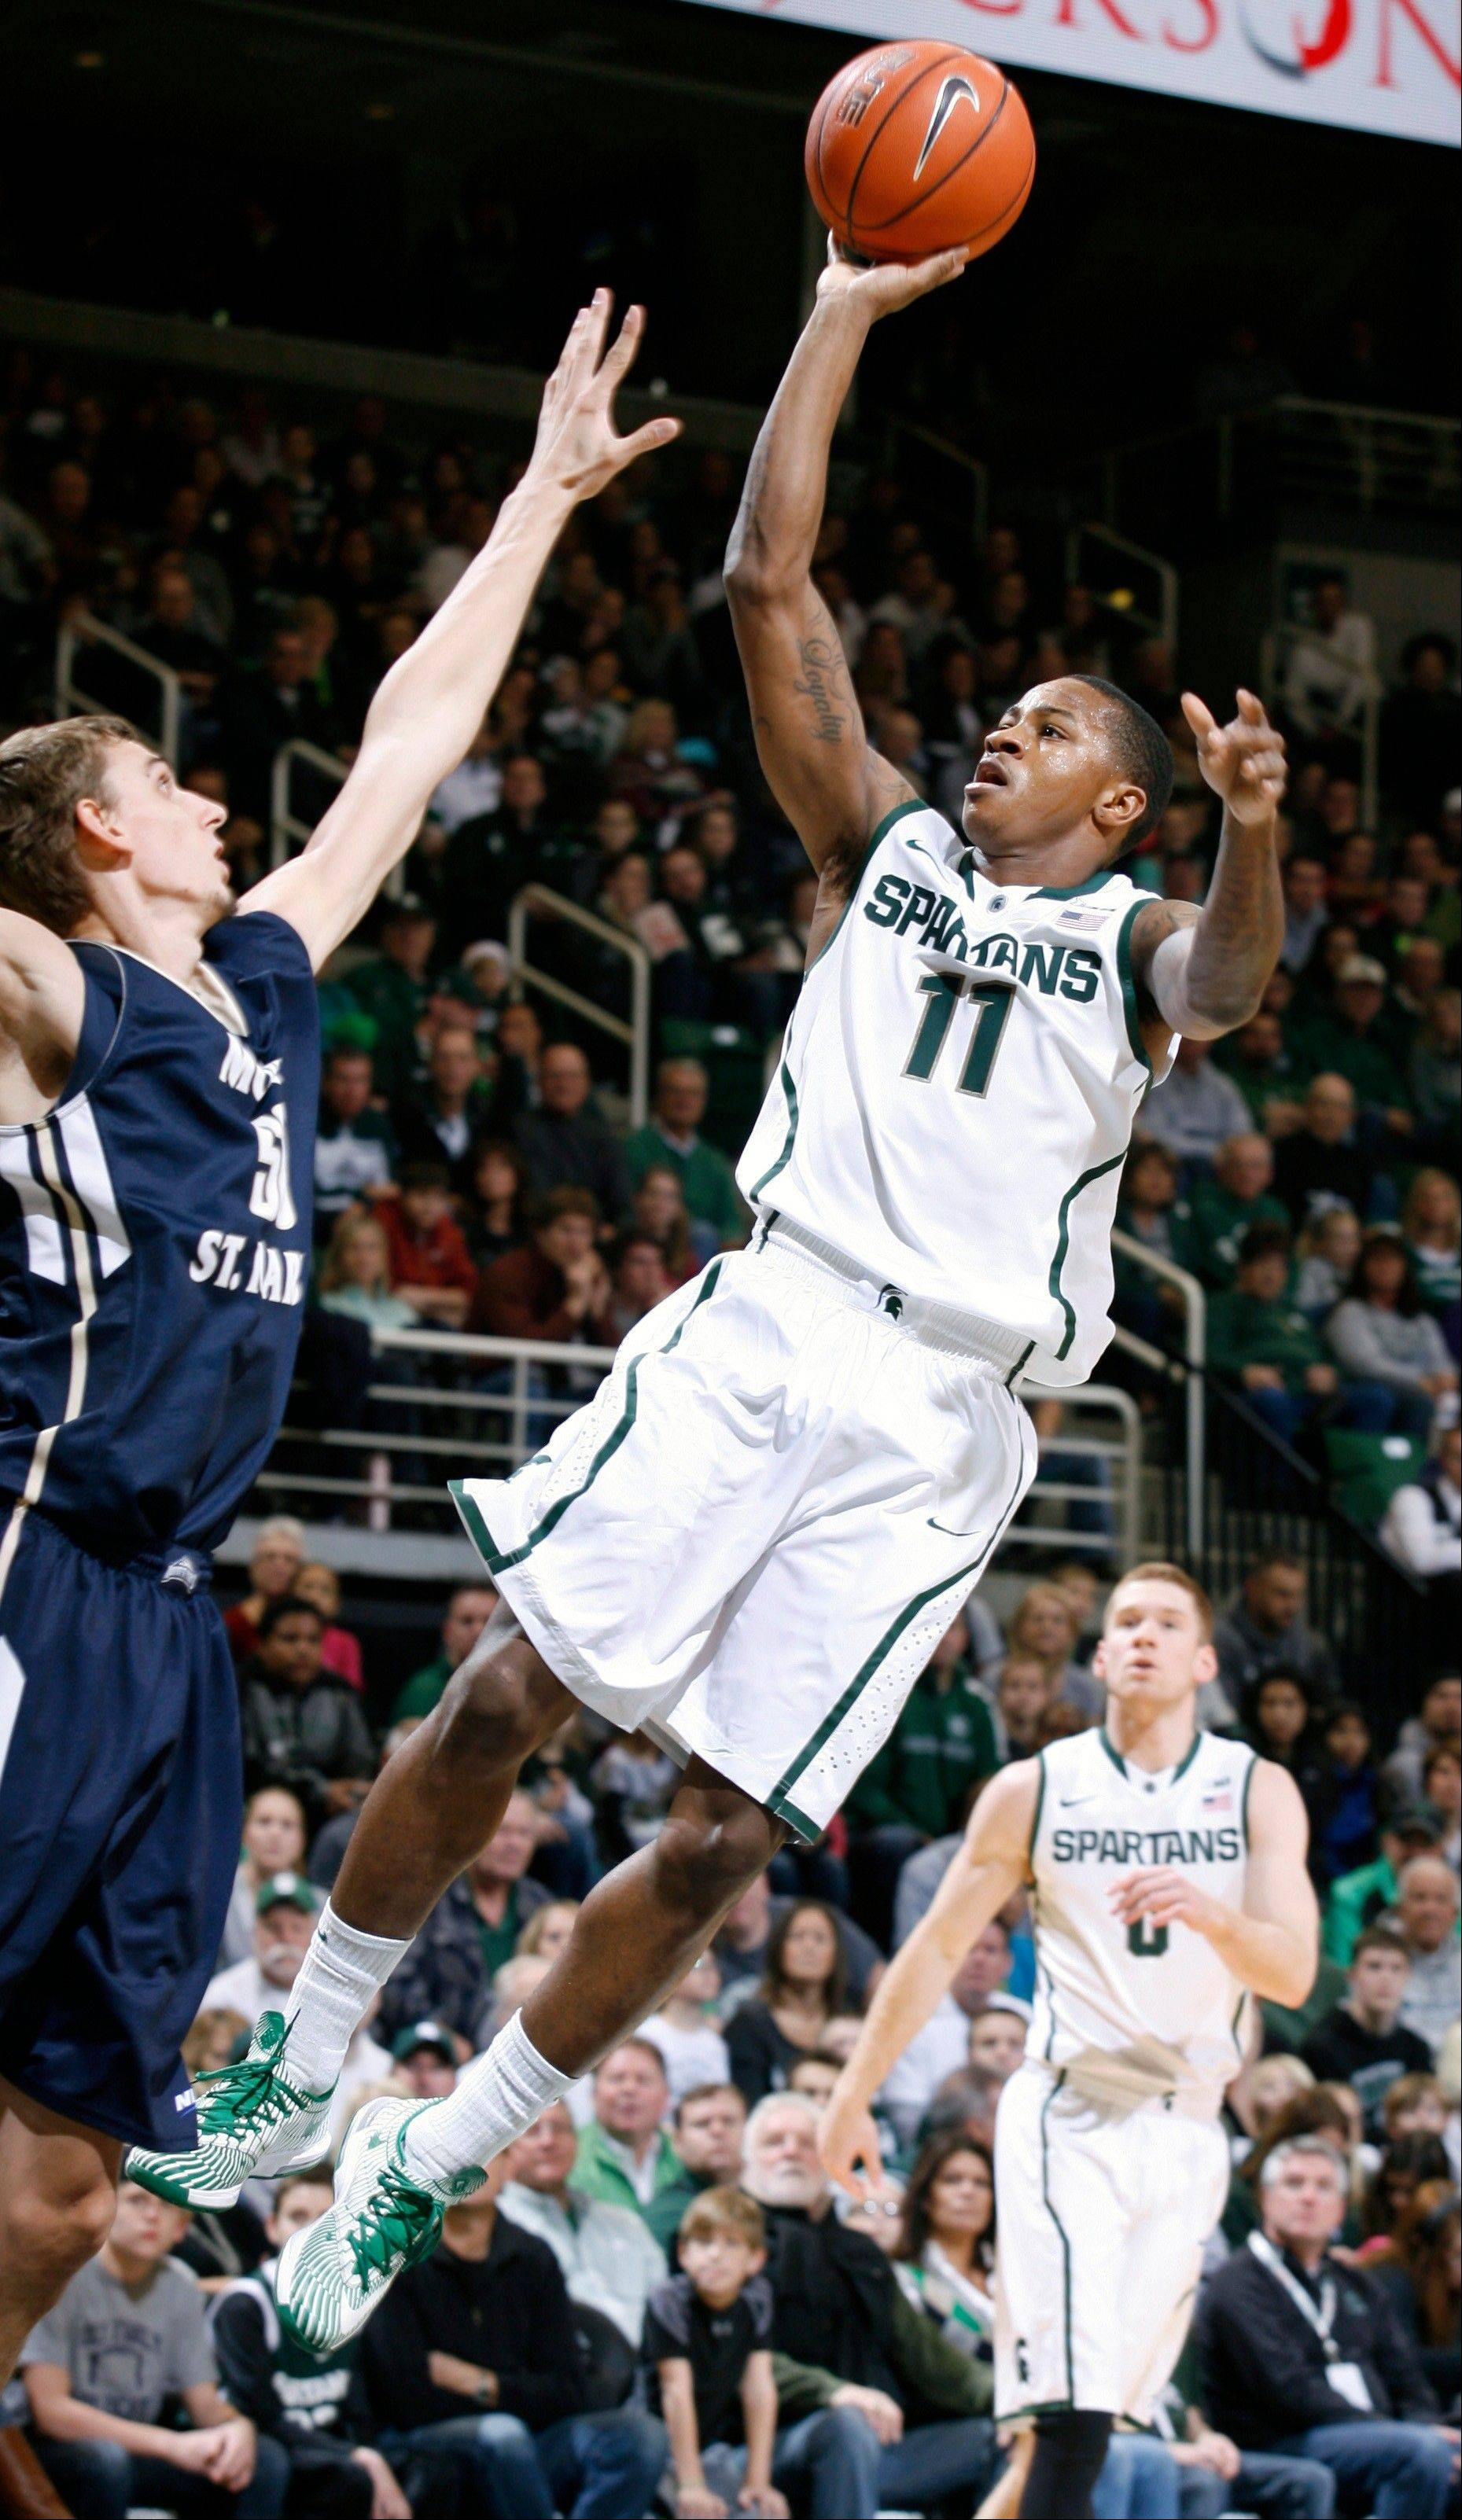 Michigan State�s Keith Appling puts up a driving shot against Mount St. Mary�s Taylor Danaher, left, during the first half of Friday�s game in East Lansing, Mich.